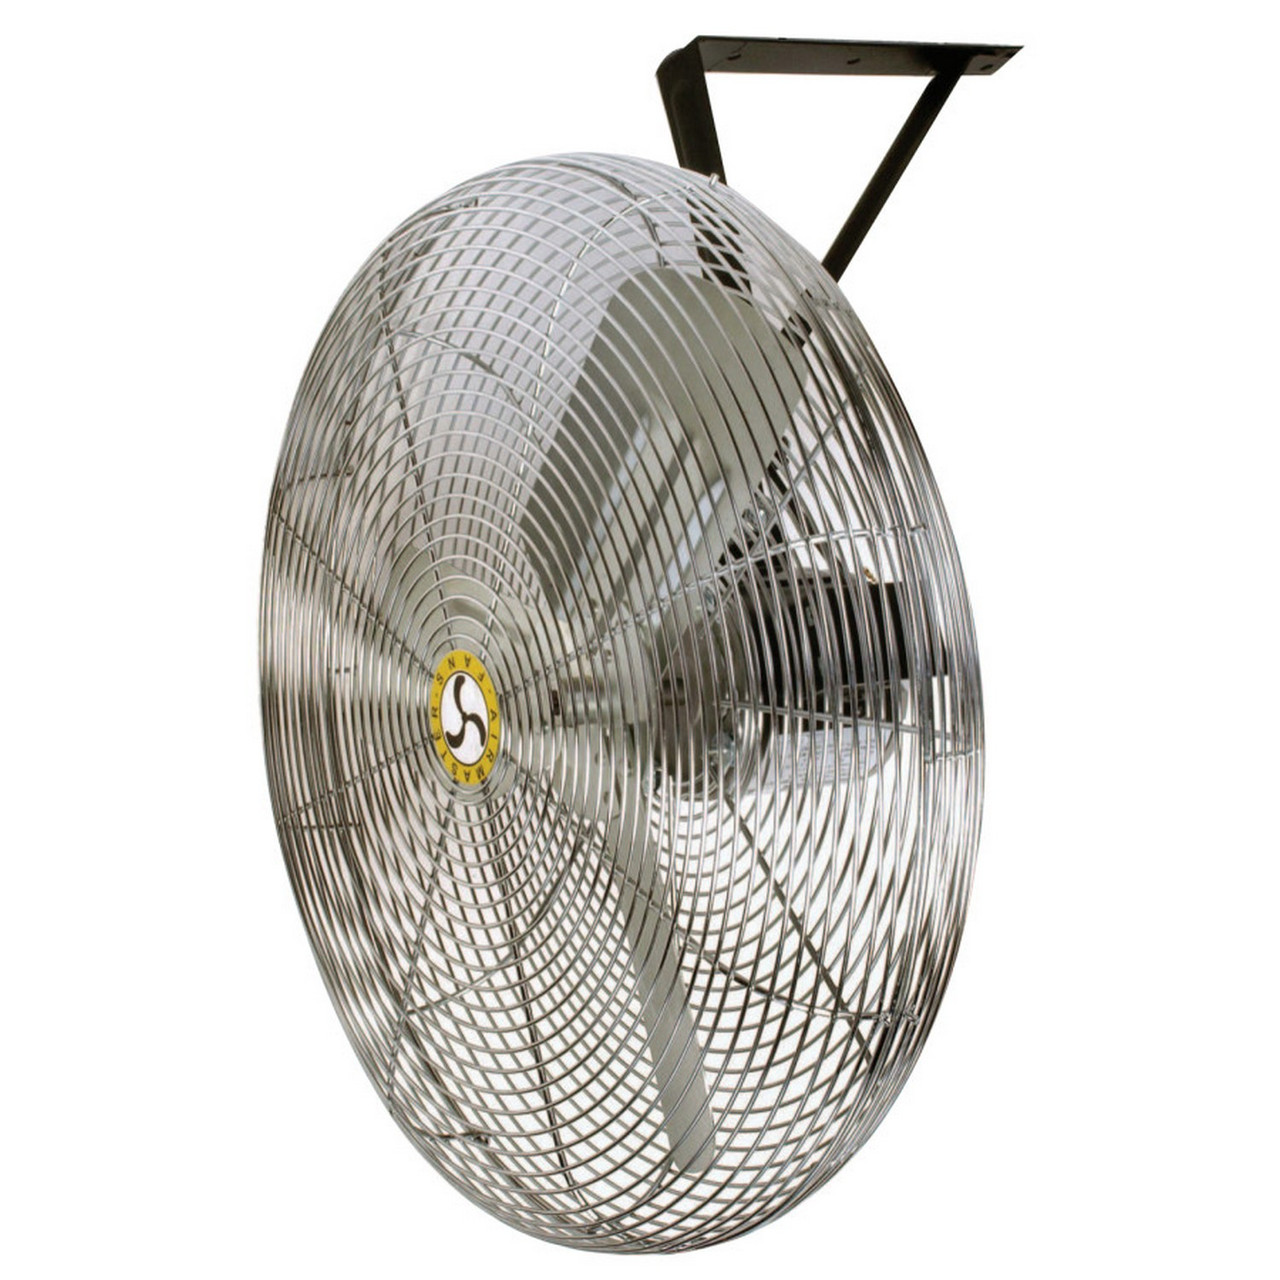 AIRMASTER 063-715731/8 hp, 3-Speed Commercial Non-Oscillating Air  Circulator, Wall/Ceiling, 30 in, 1/4 hp, 3-Speed